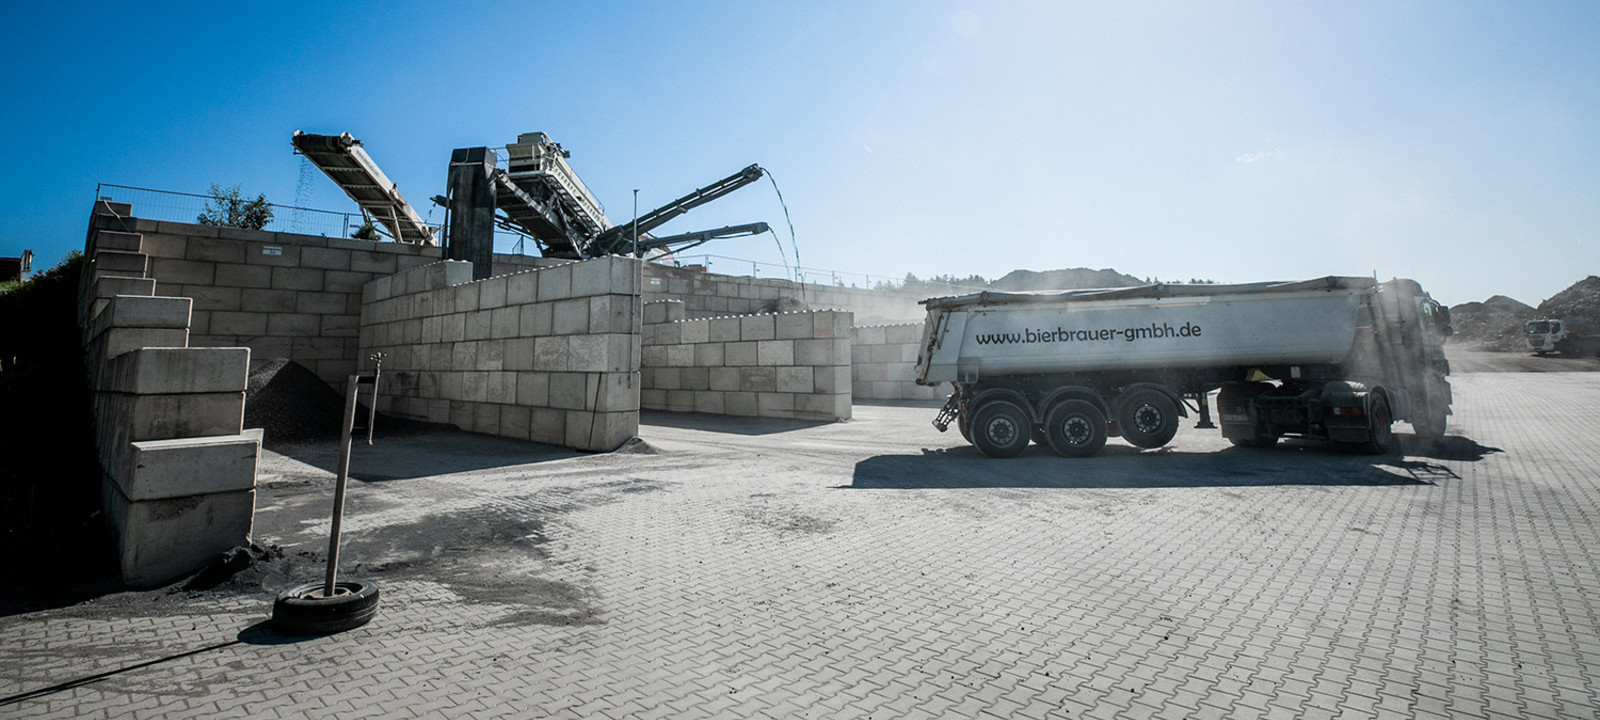 Abholung Recyclingmaterial LKW